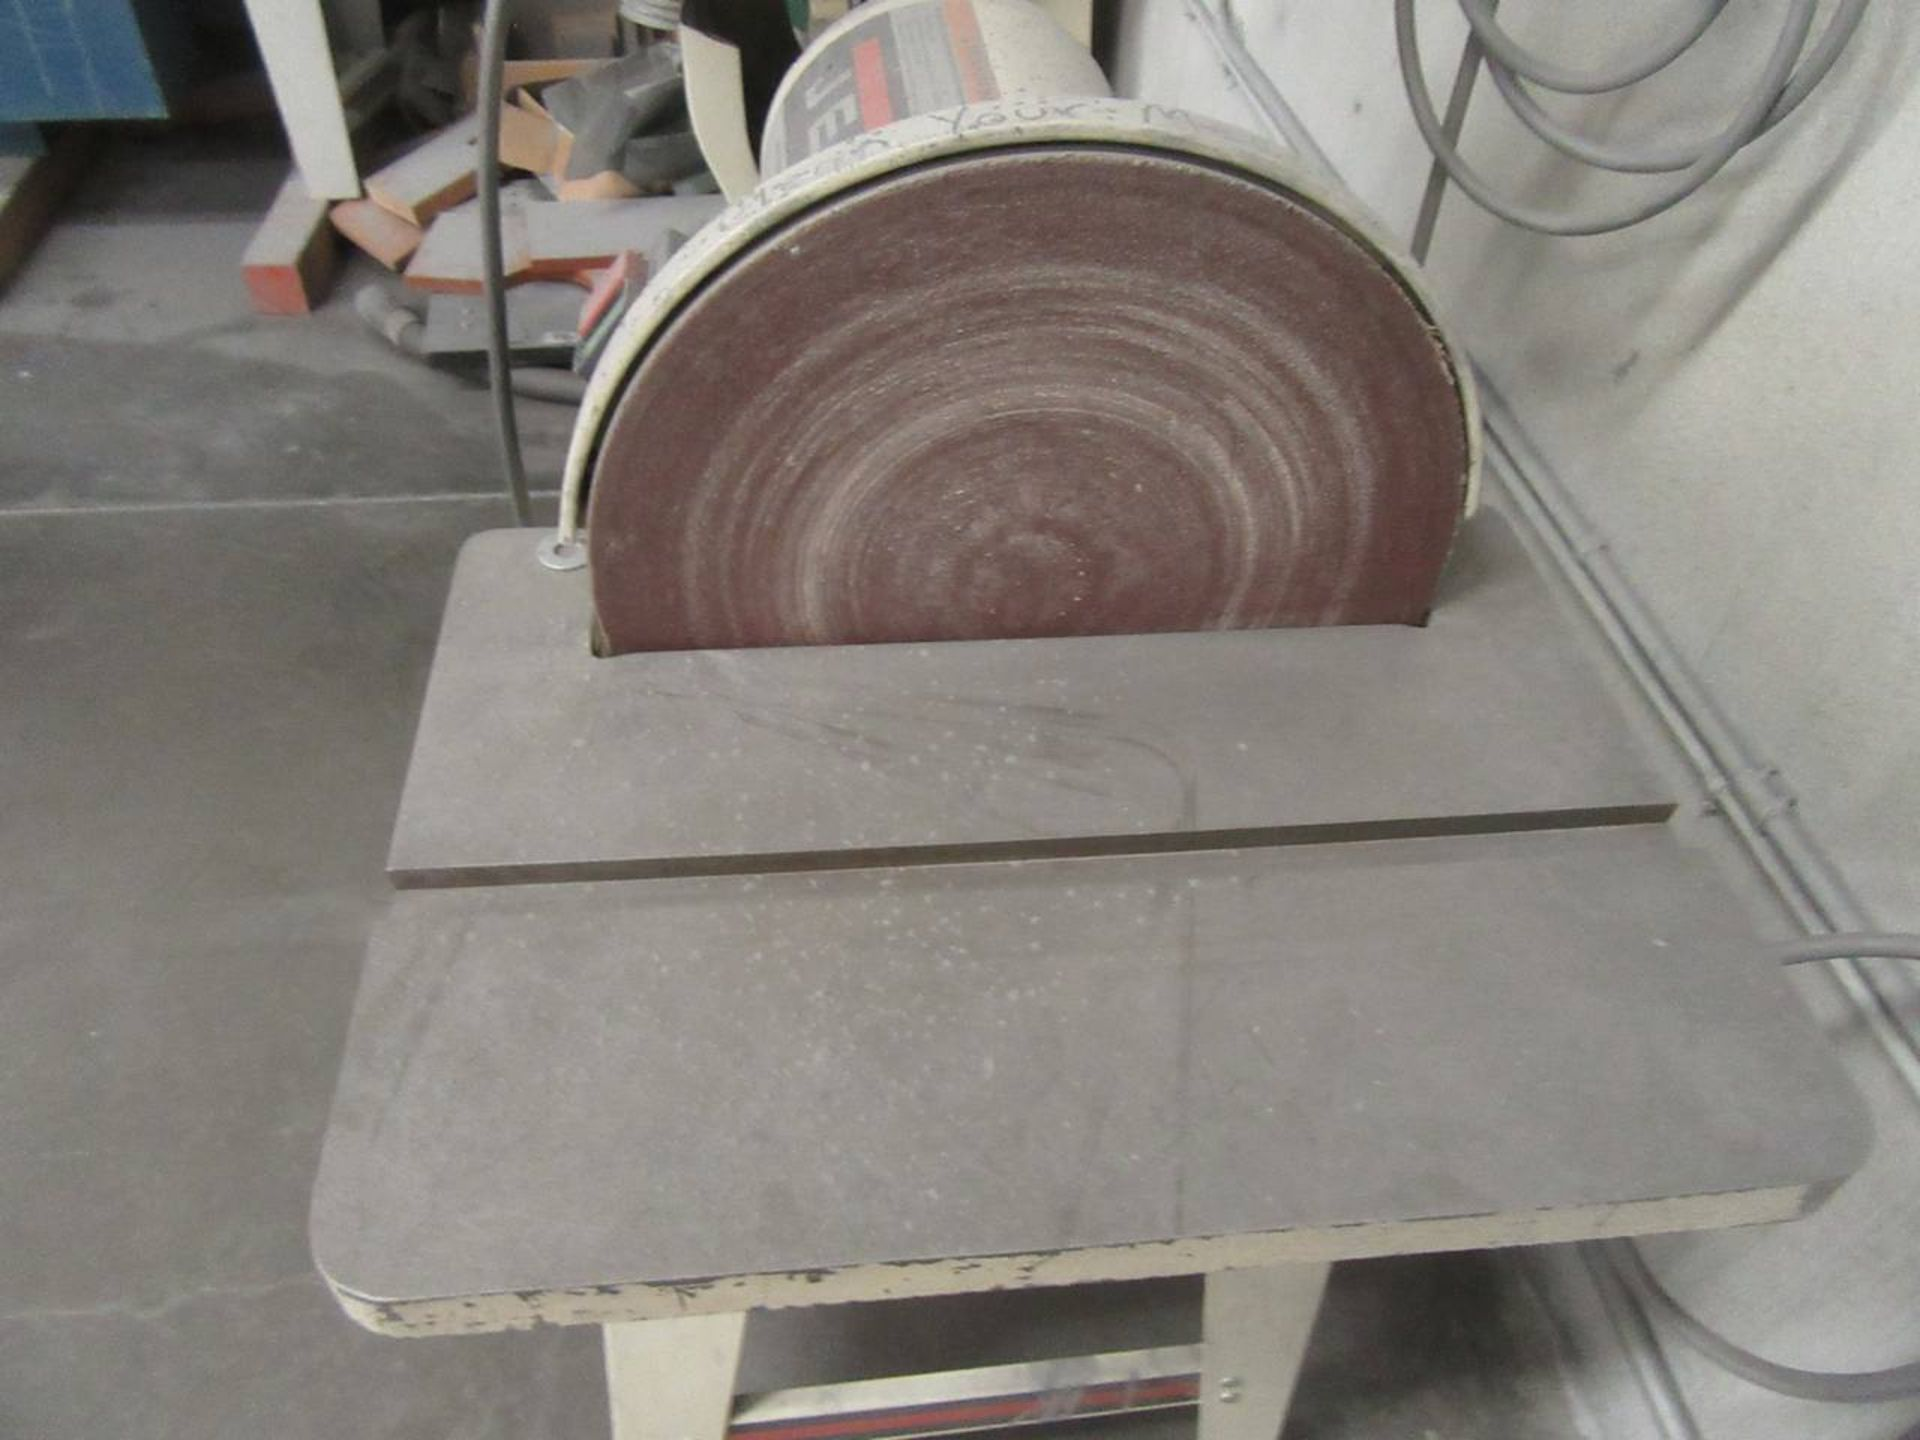 Jet JSG-6DC Belt/Disc Sander - Image 2 of 3